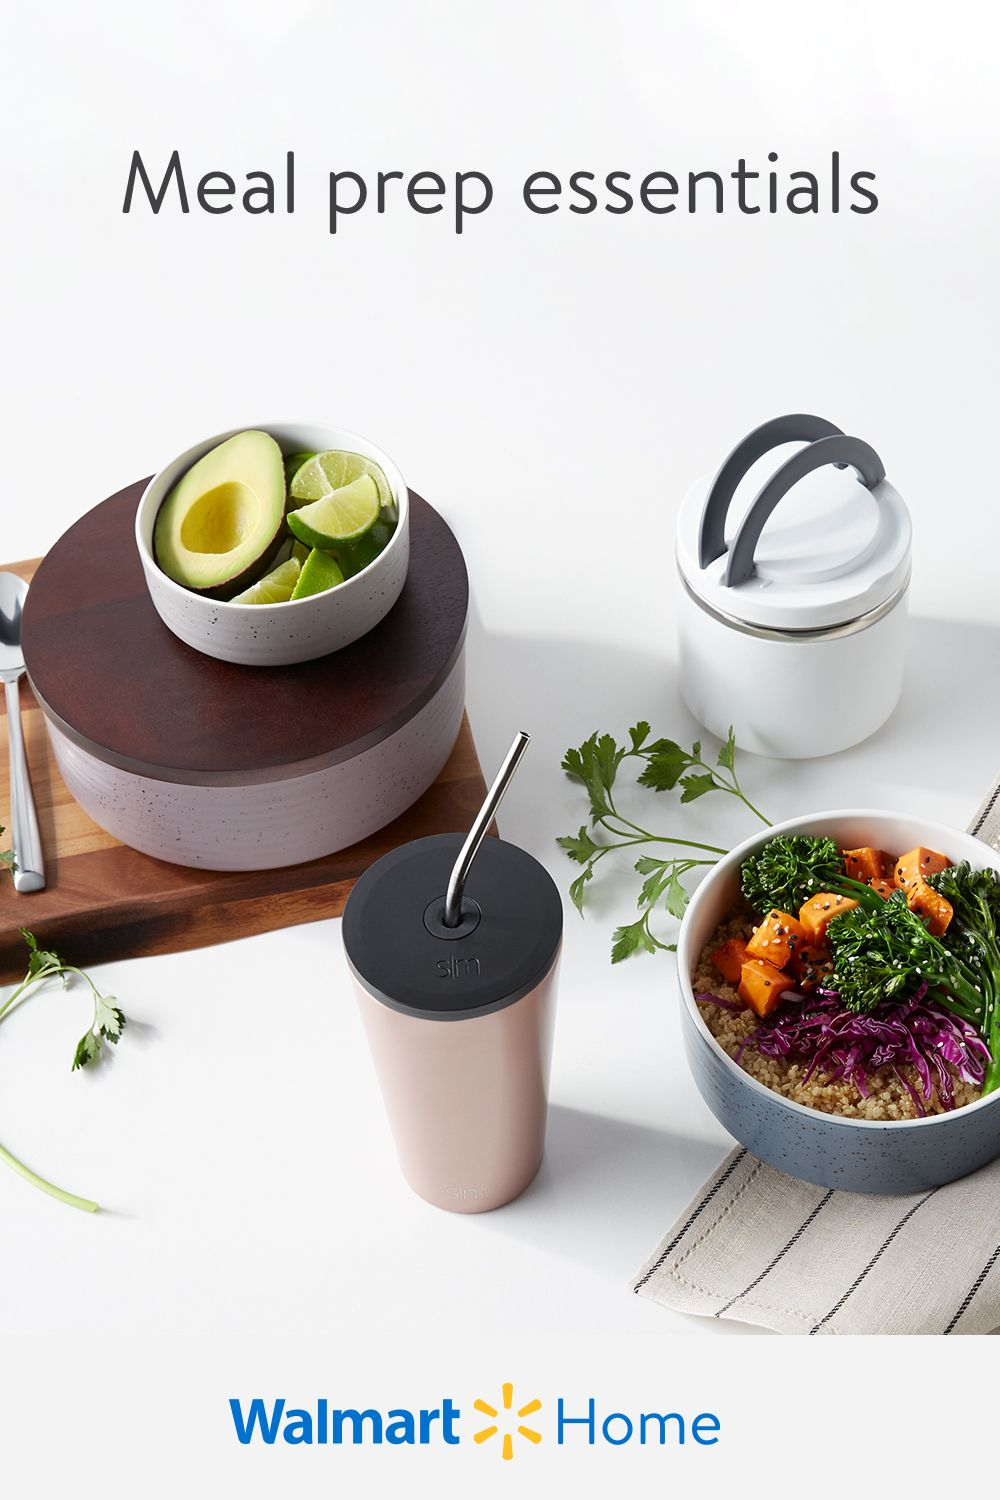 For easier cooking & packing homemade lunches, think functional & stylish food storage. Shop Walmart for beautiful bento boxes, ceramic food storage, & much more.